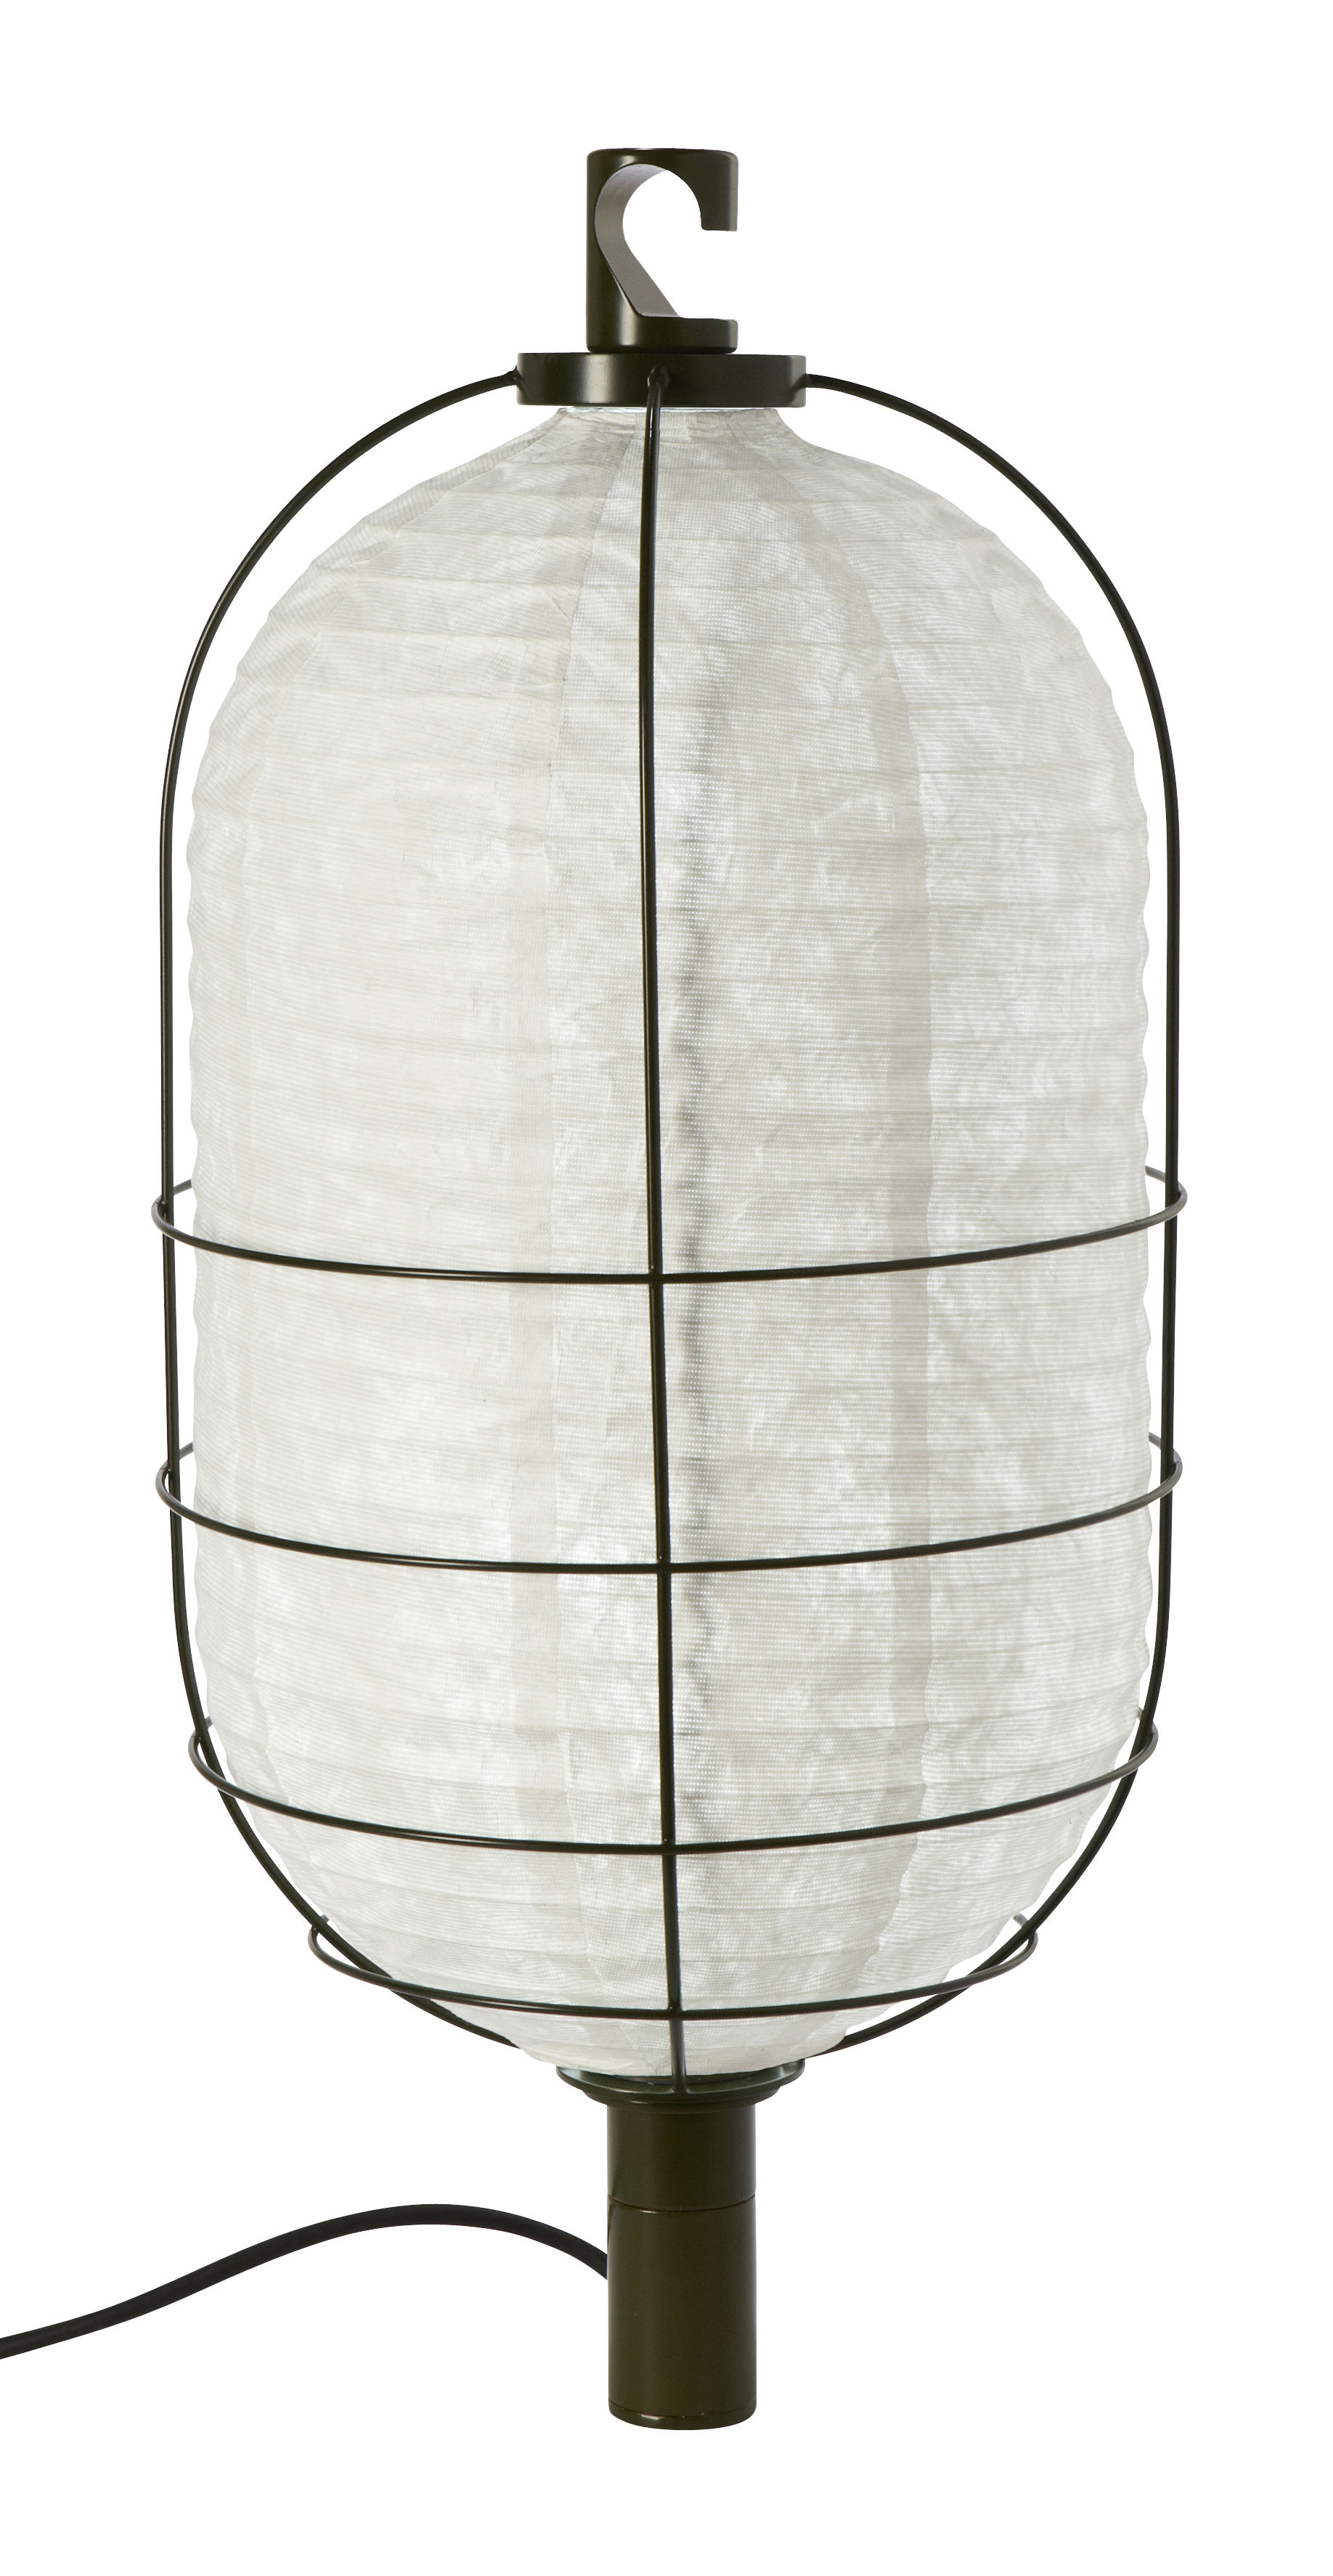 Lighting - Table Lamps - In & Out Lamp - Medium - Ø 30 cm by Forestier - H 65,5 x Ø 30 cm - Green - Lacquered metal, Tyvek